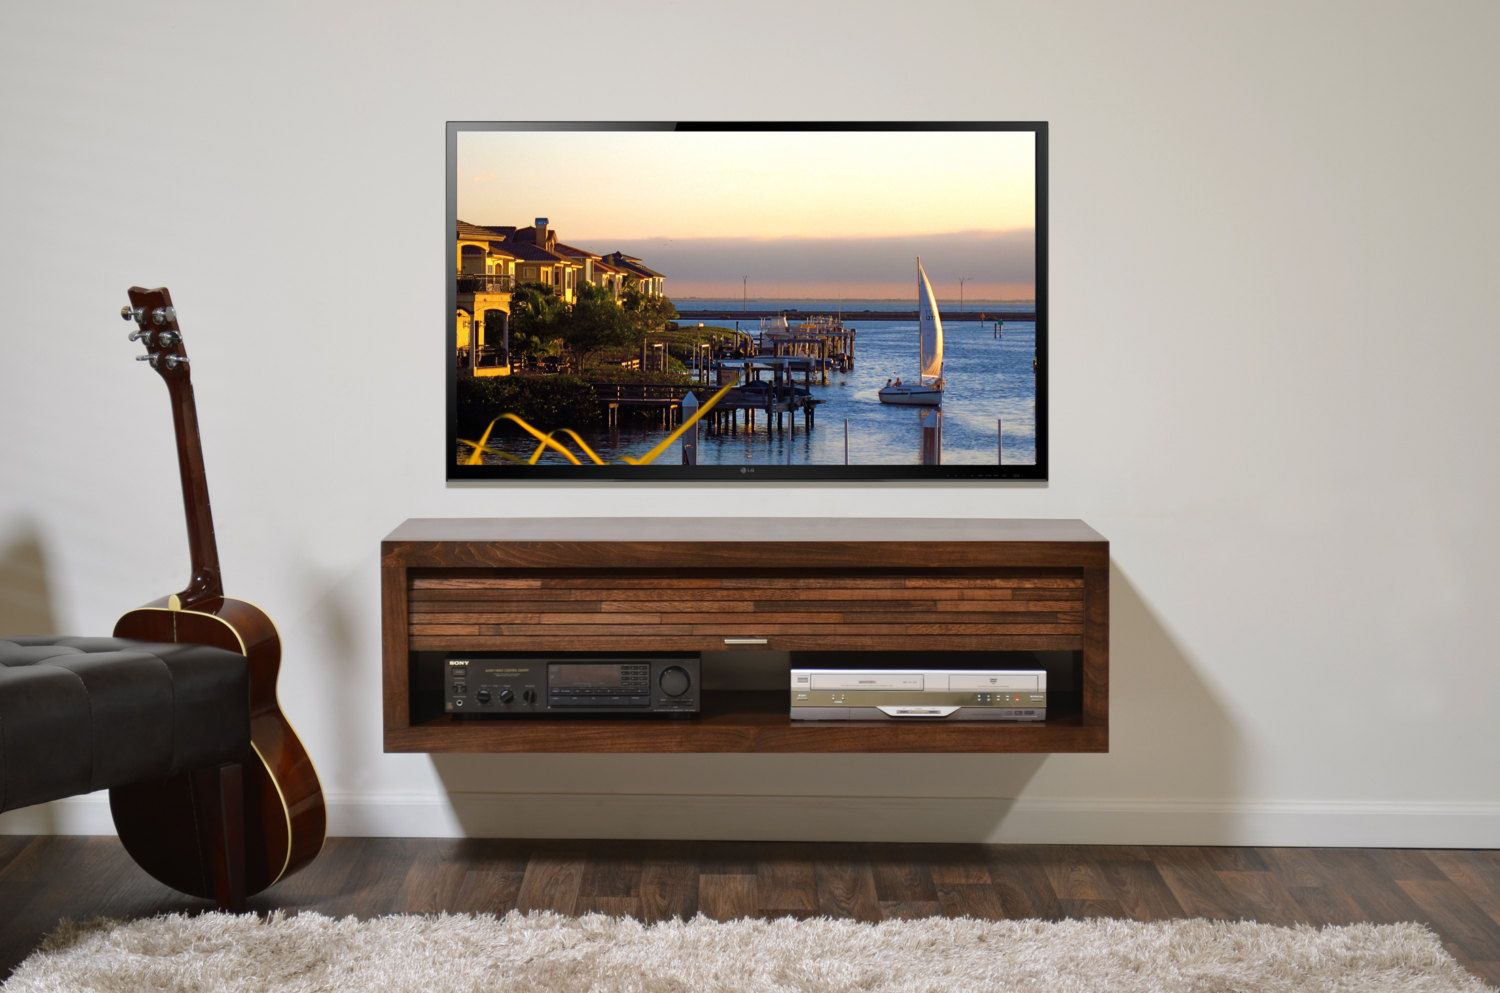 floating shelf for media components google search living room rh pinterest com how to build floating shelves for electronics how to build floating shelves for electronics